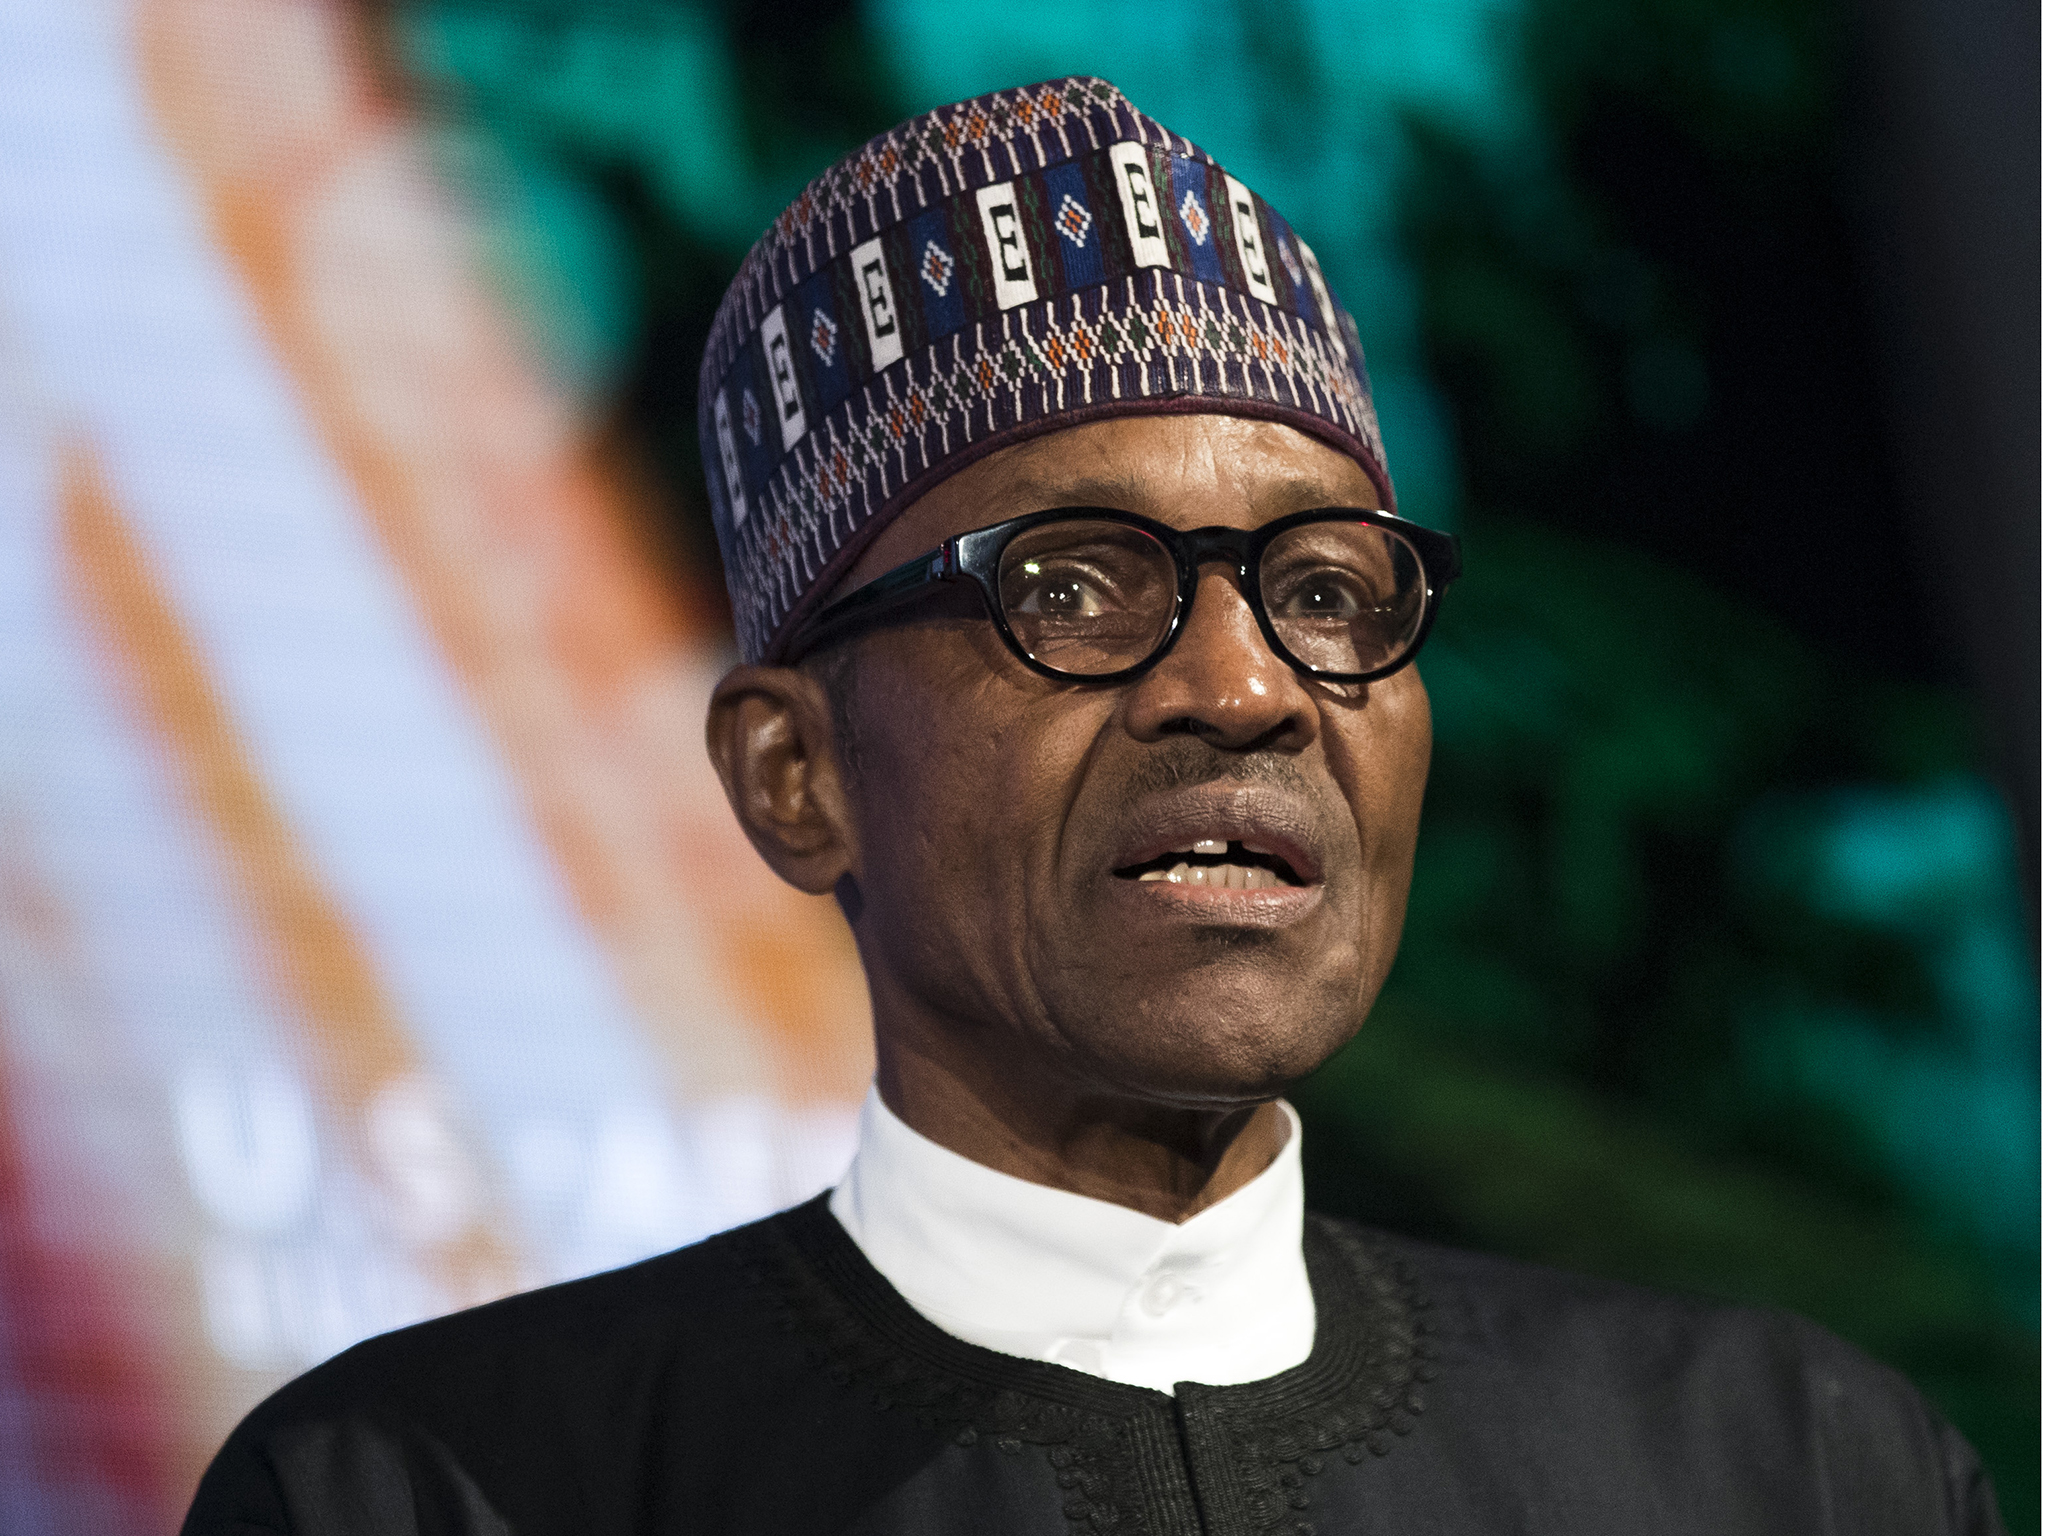 Buhari calls for unity in Eid-el-Fitr message